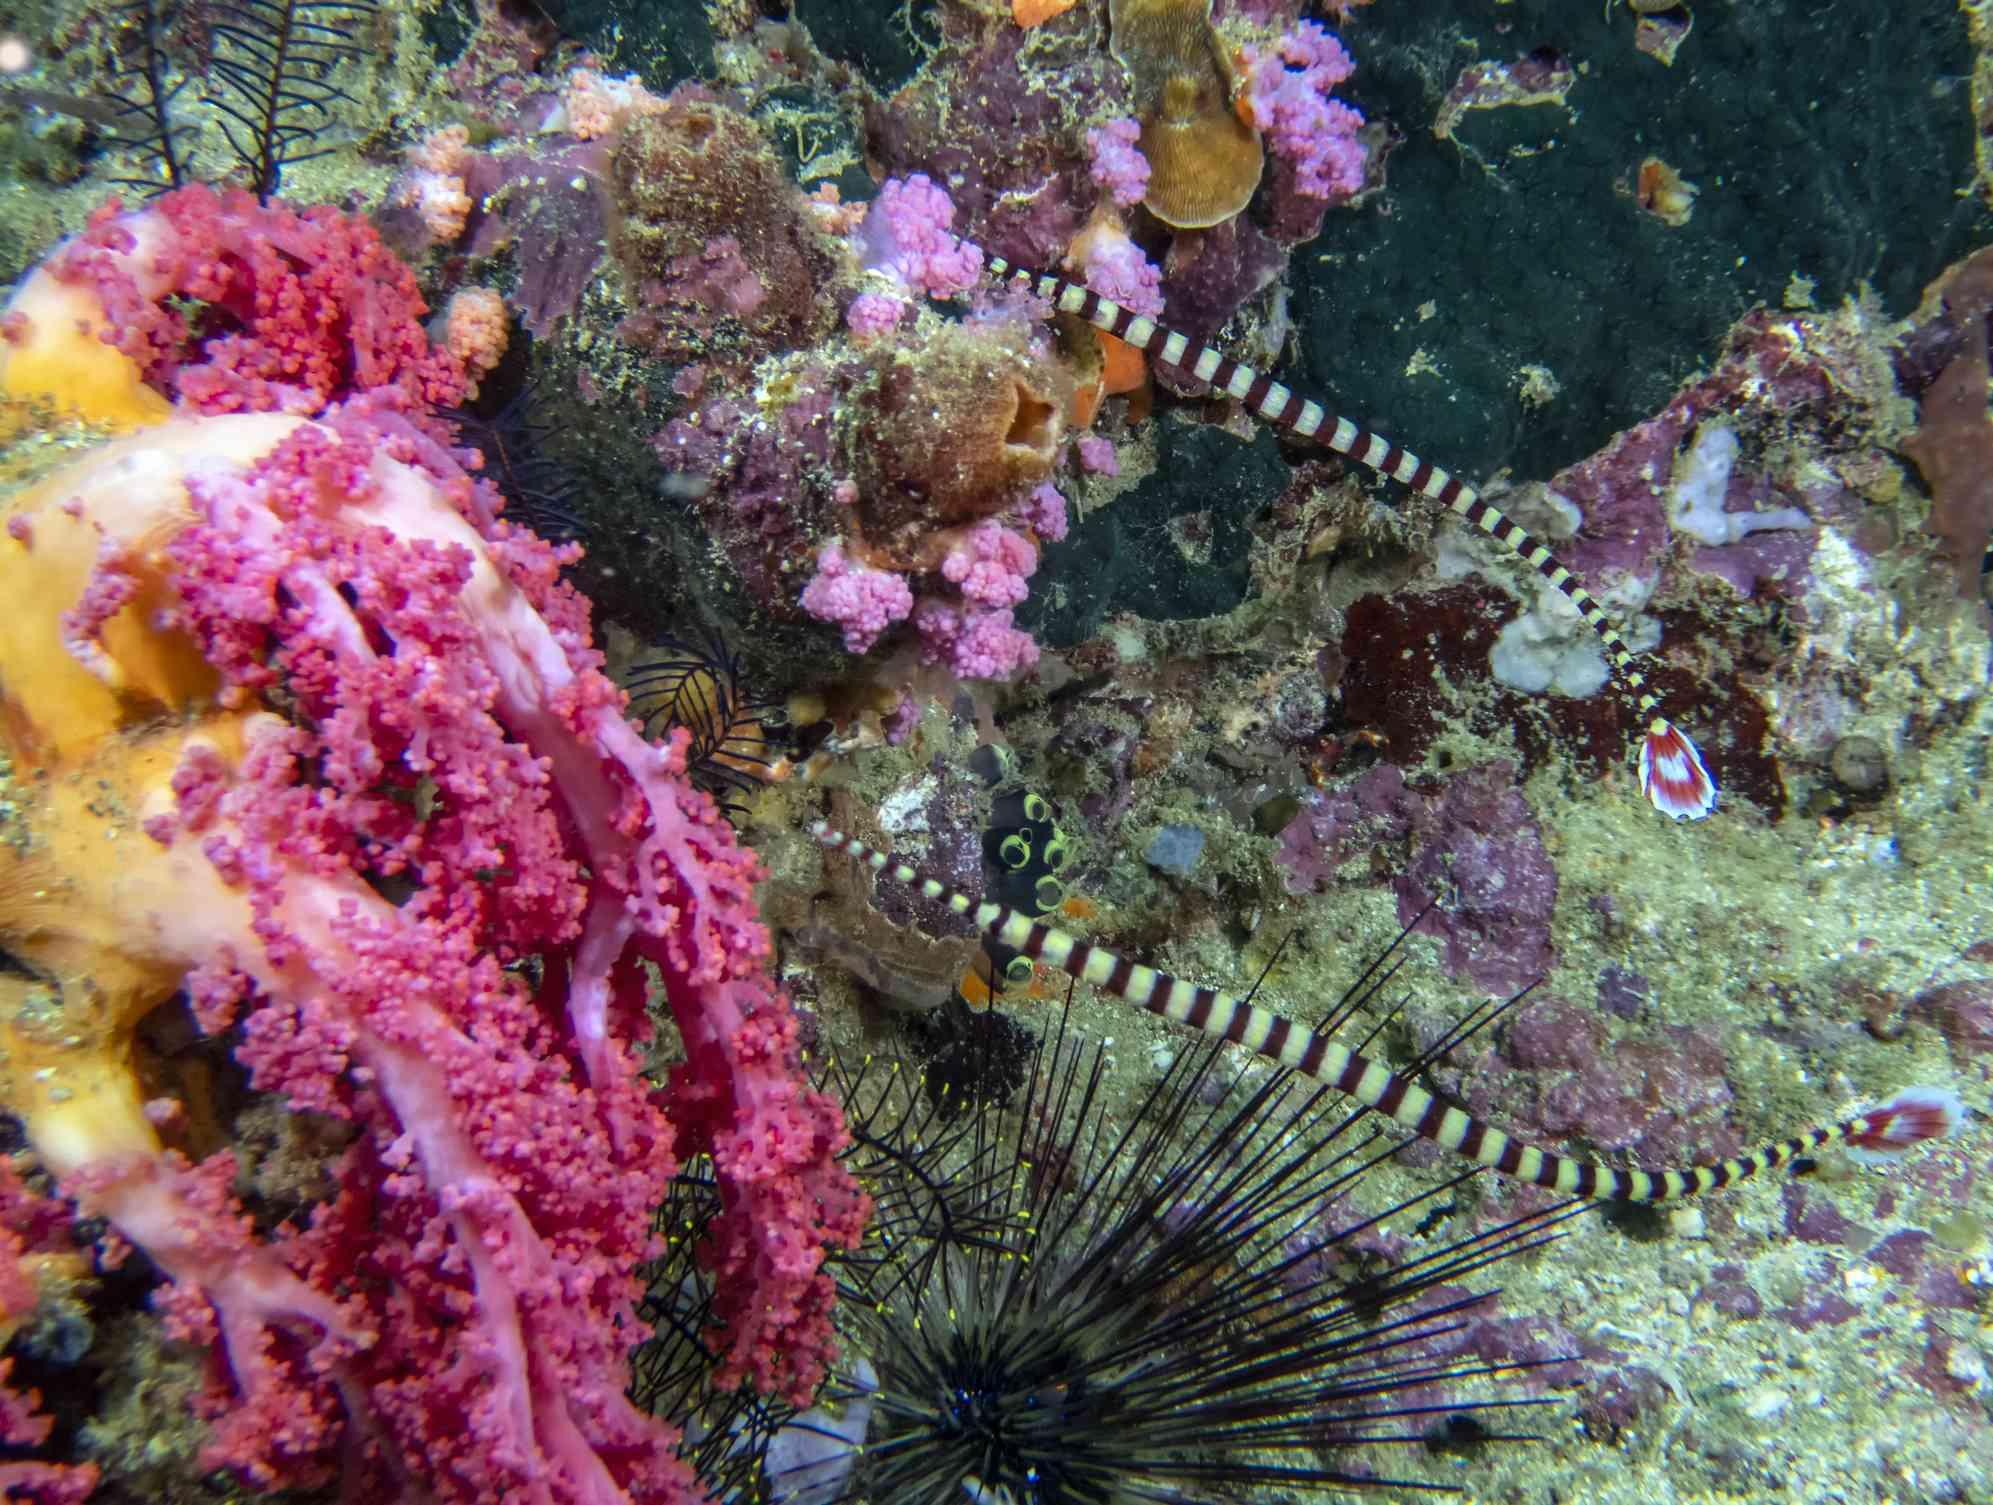 A pair of black and yellow striped banded pipefish on a pink, yellow, and lavender reef